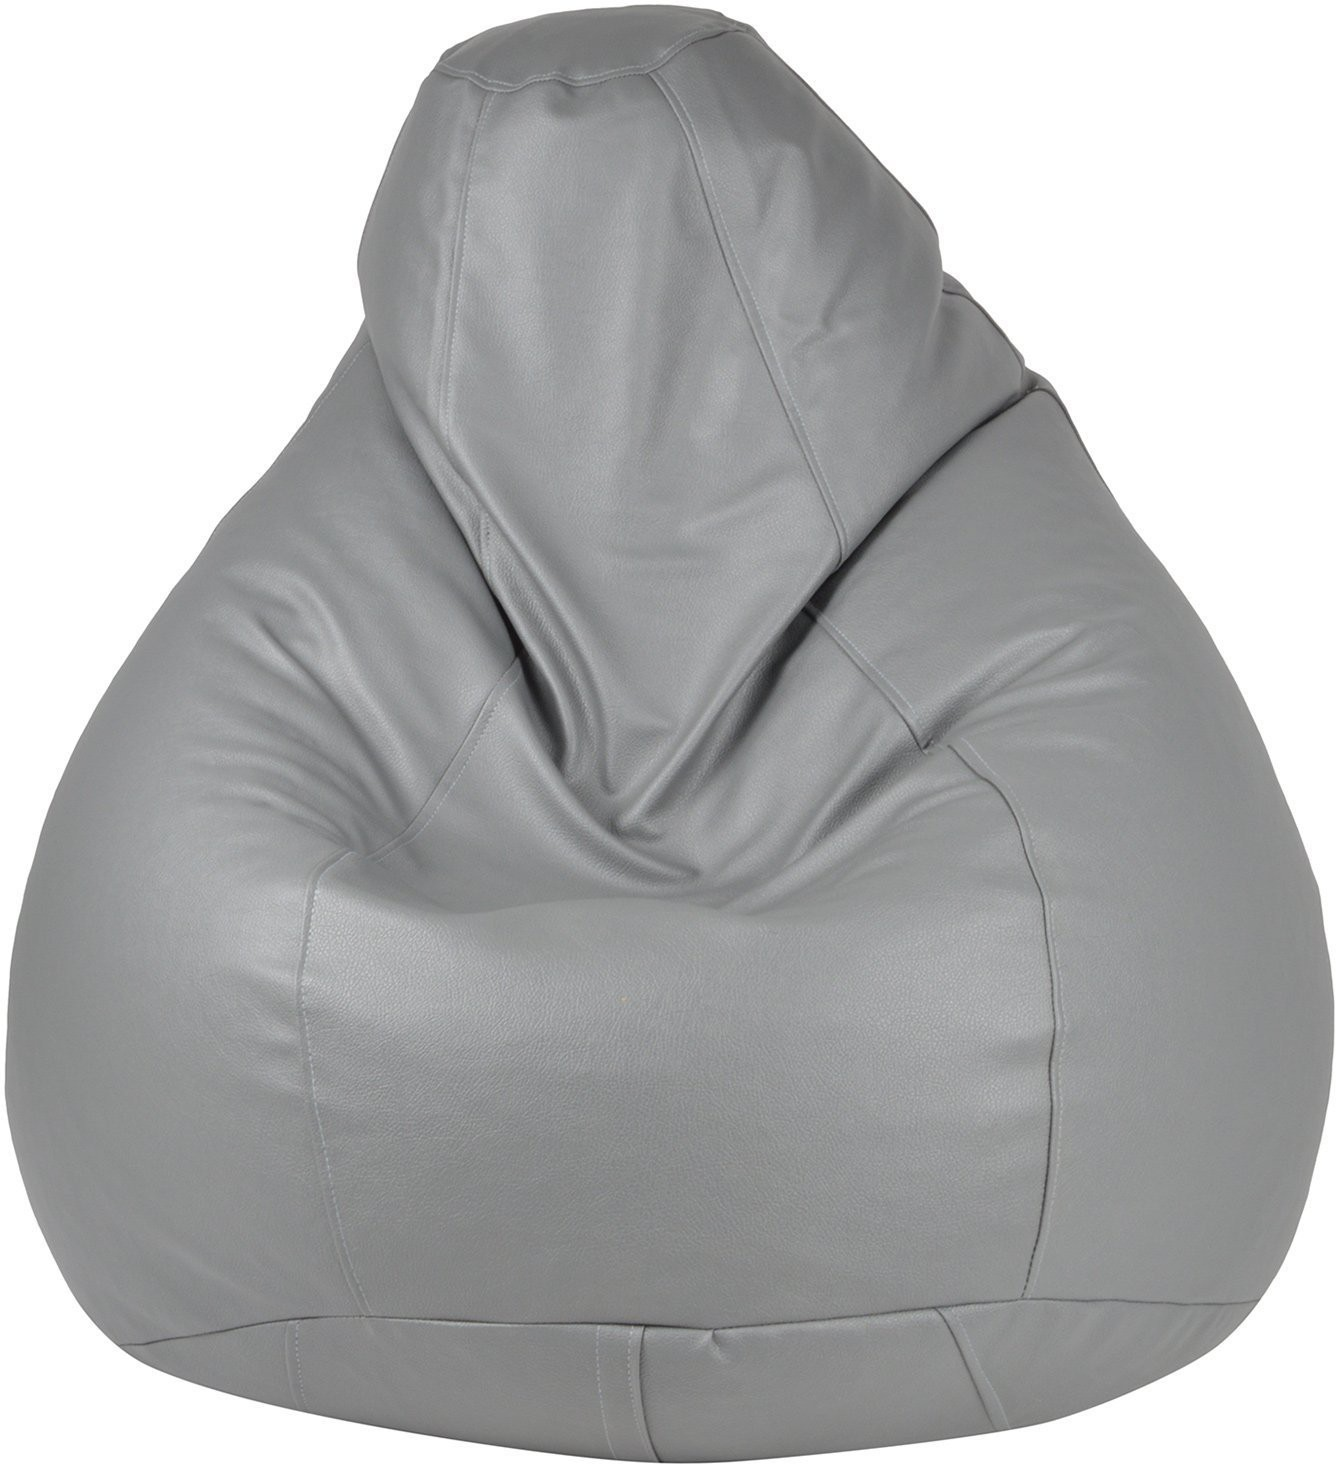 View Galaxy Decorz XL Bean Bag Cover(Grey) Furniture (Galaxy Decorz)